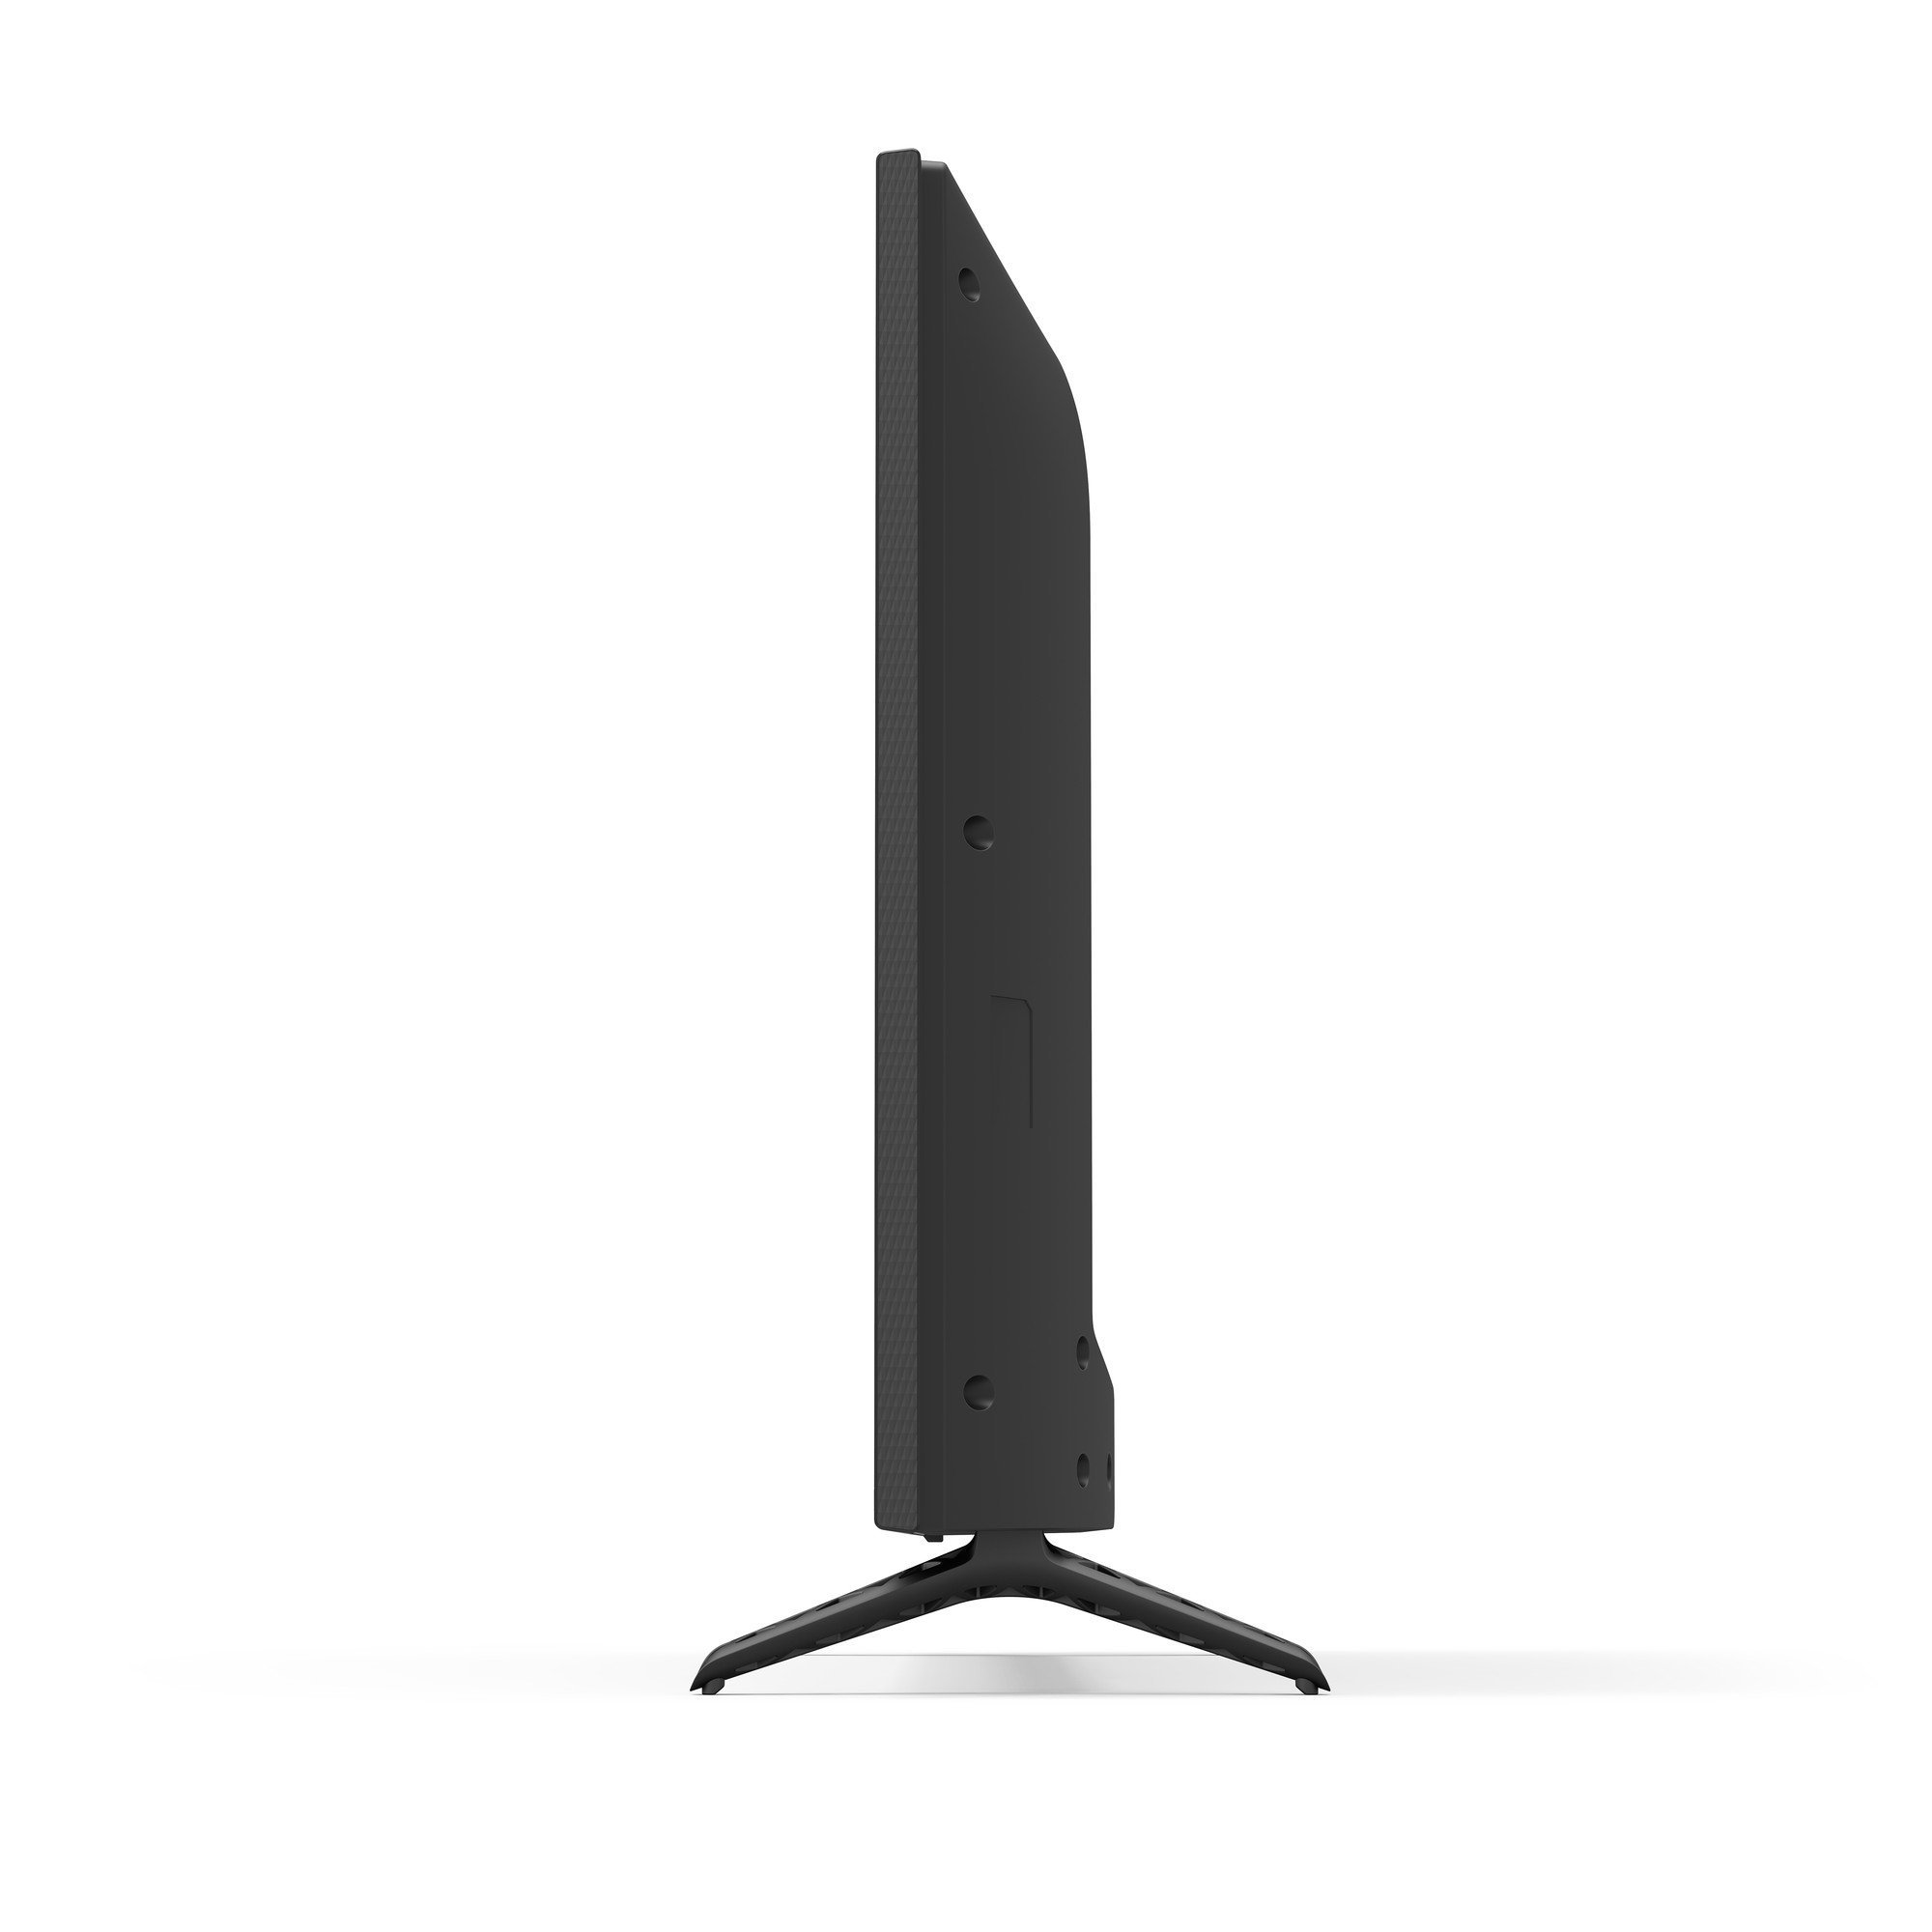 VIZIO SmartCast D-Series 32' Class FHD (1080P) Smart Full-Array LED TV D32f-F1 (Renewed) by VIZIO (Image #4)